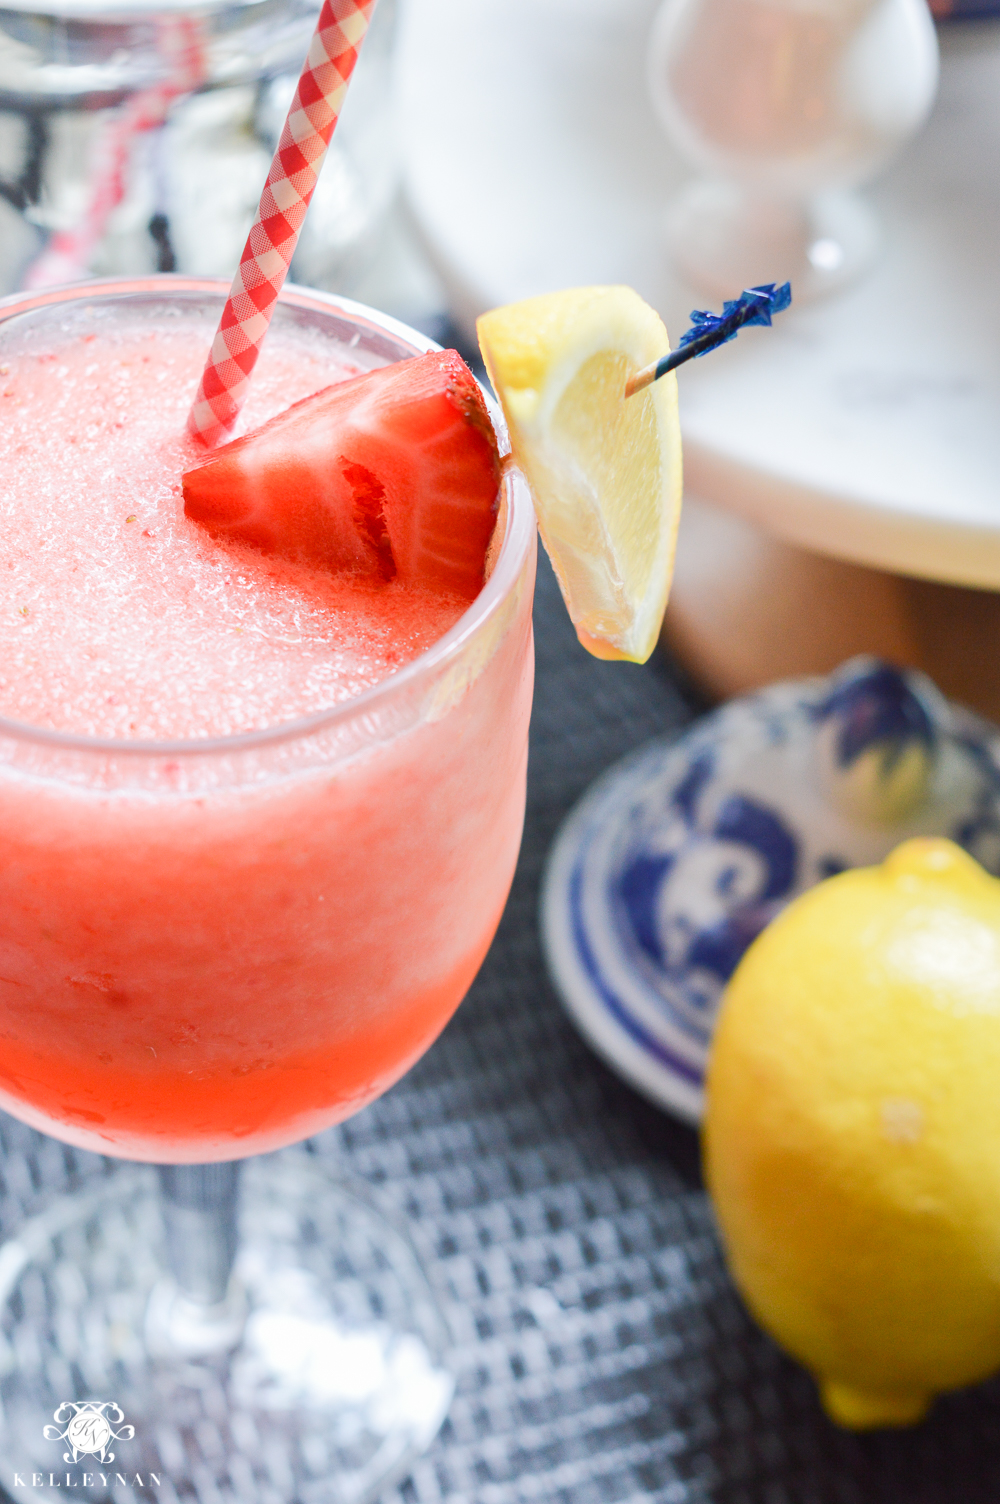 Fourth of July Decor and Strawberry Lemon-Limeade Rum Slush Drink Recipe- easy adult frozen drink